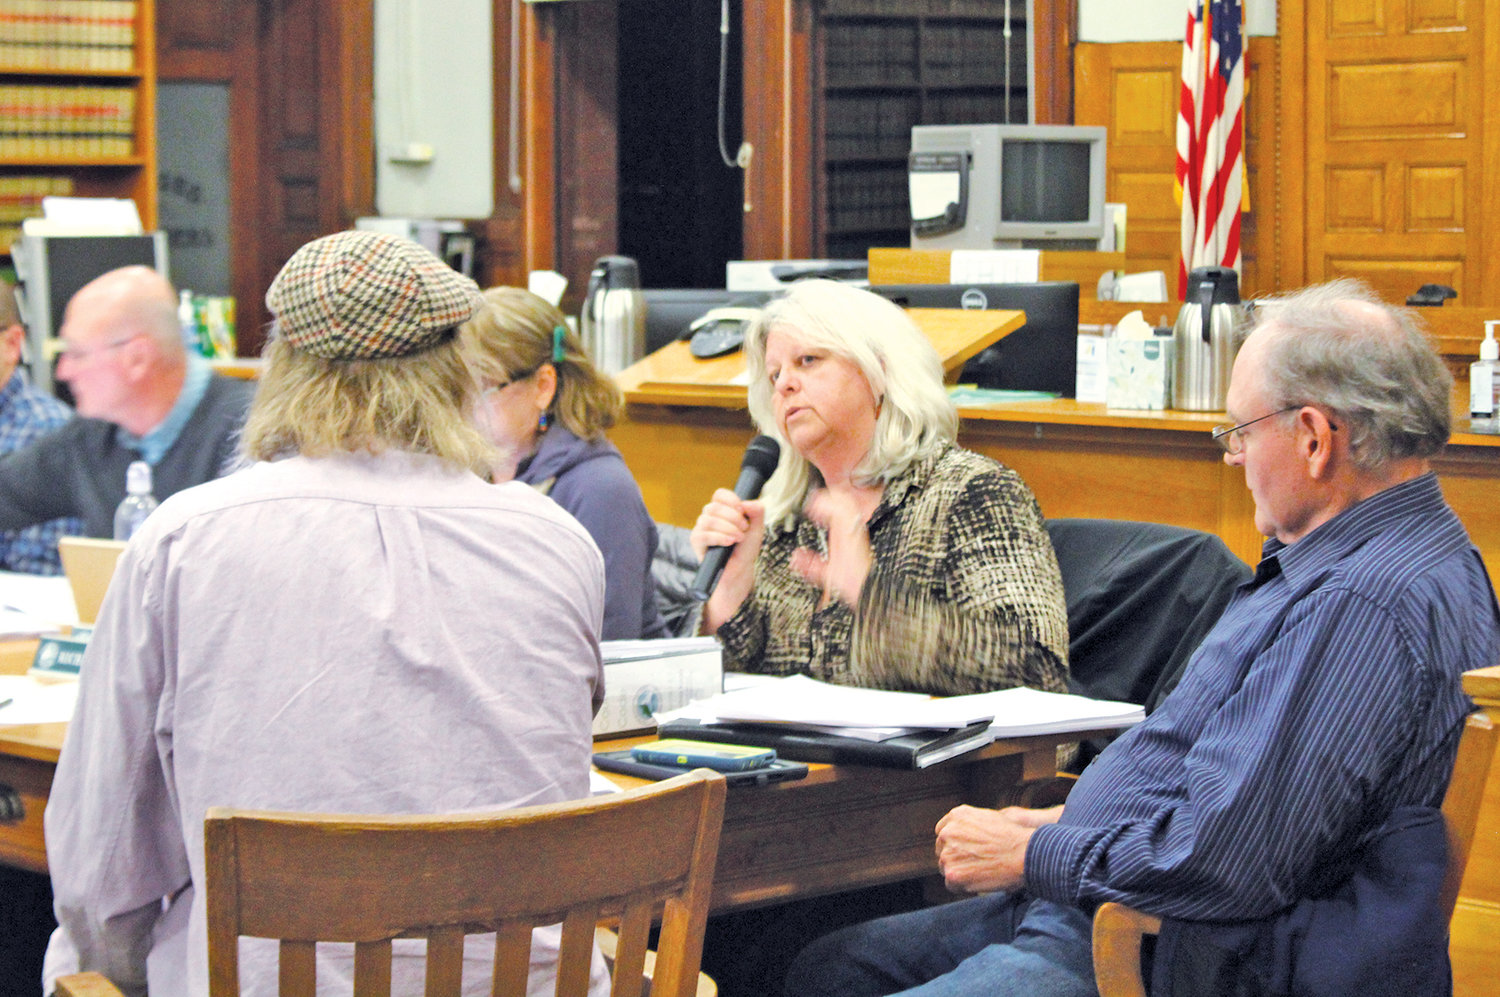 """We have some independence to make our own recommendations,"" planning commission vice chair Cynthia Koan said at the Nov. 19 meeting while discussing changes to Title 18 in the county code, regarding commercial shooting facilities."